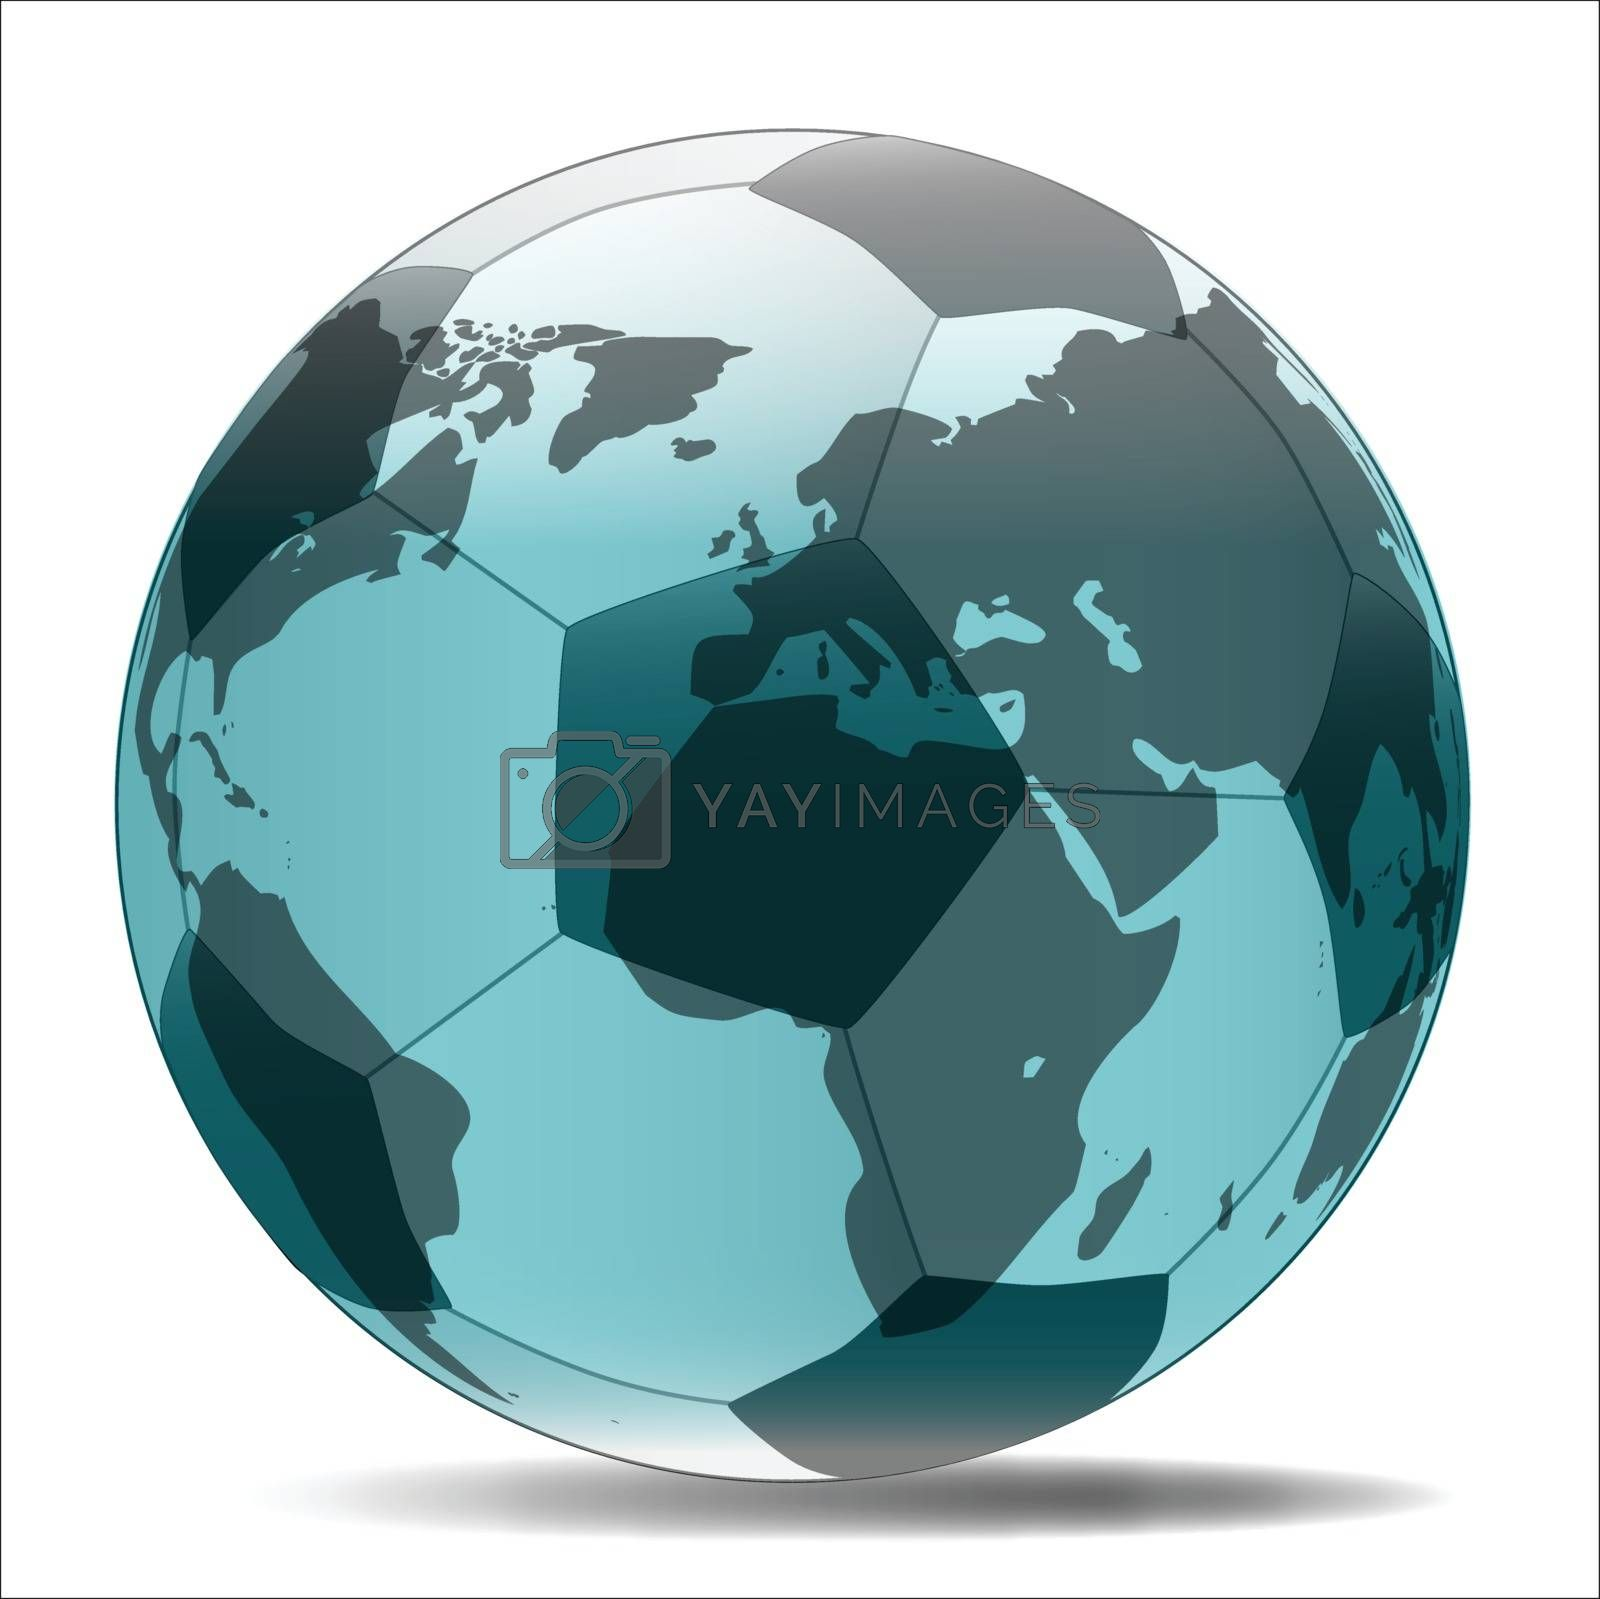 A typical soccer football with Earth map globe isolated over a white background.